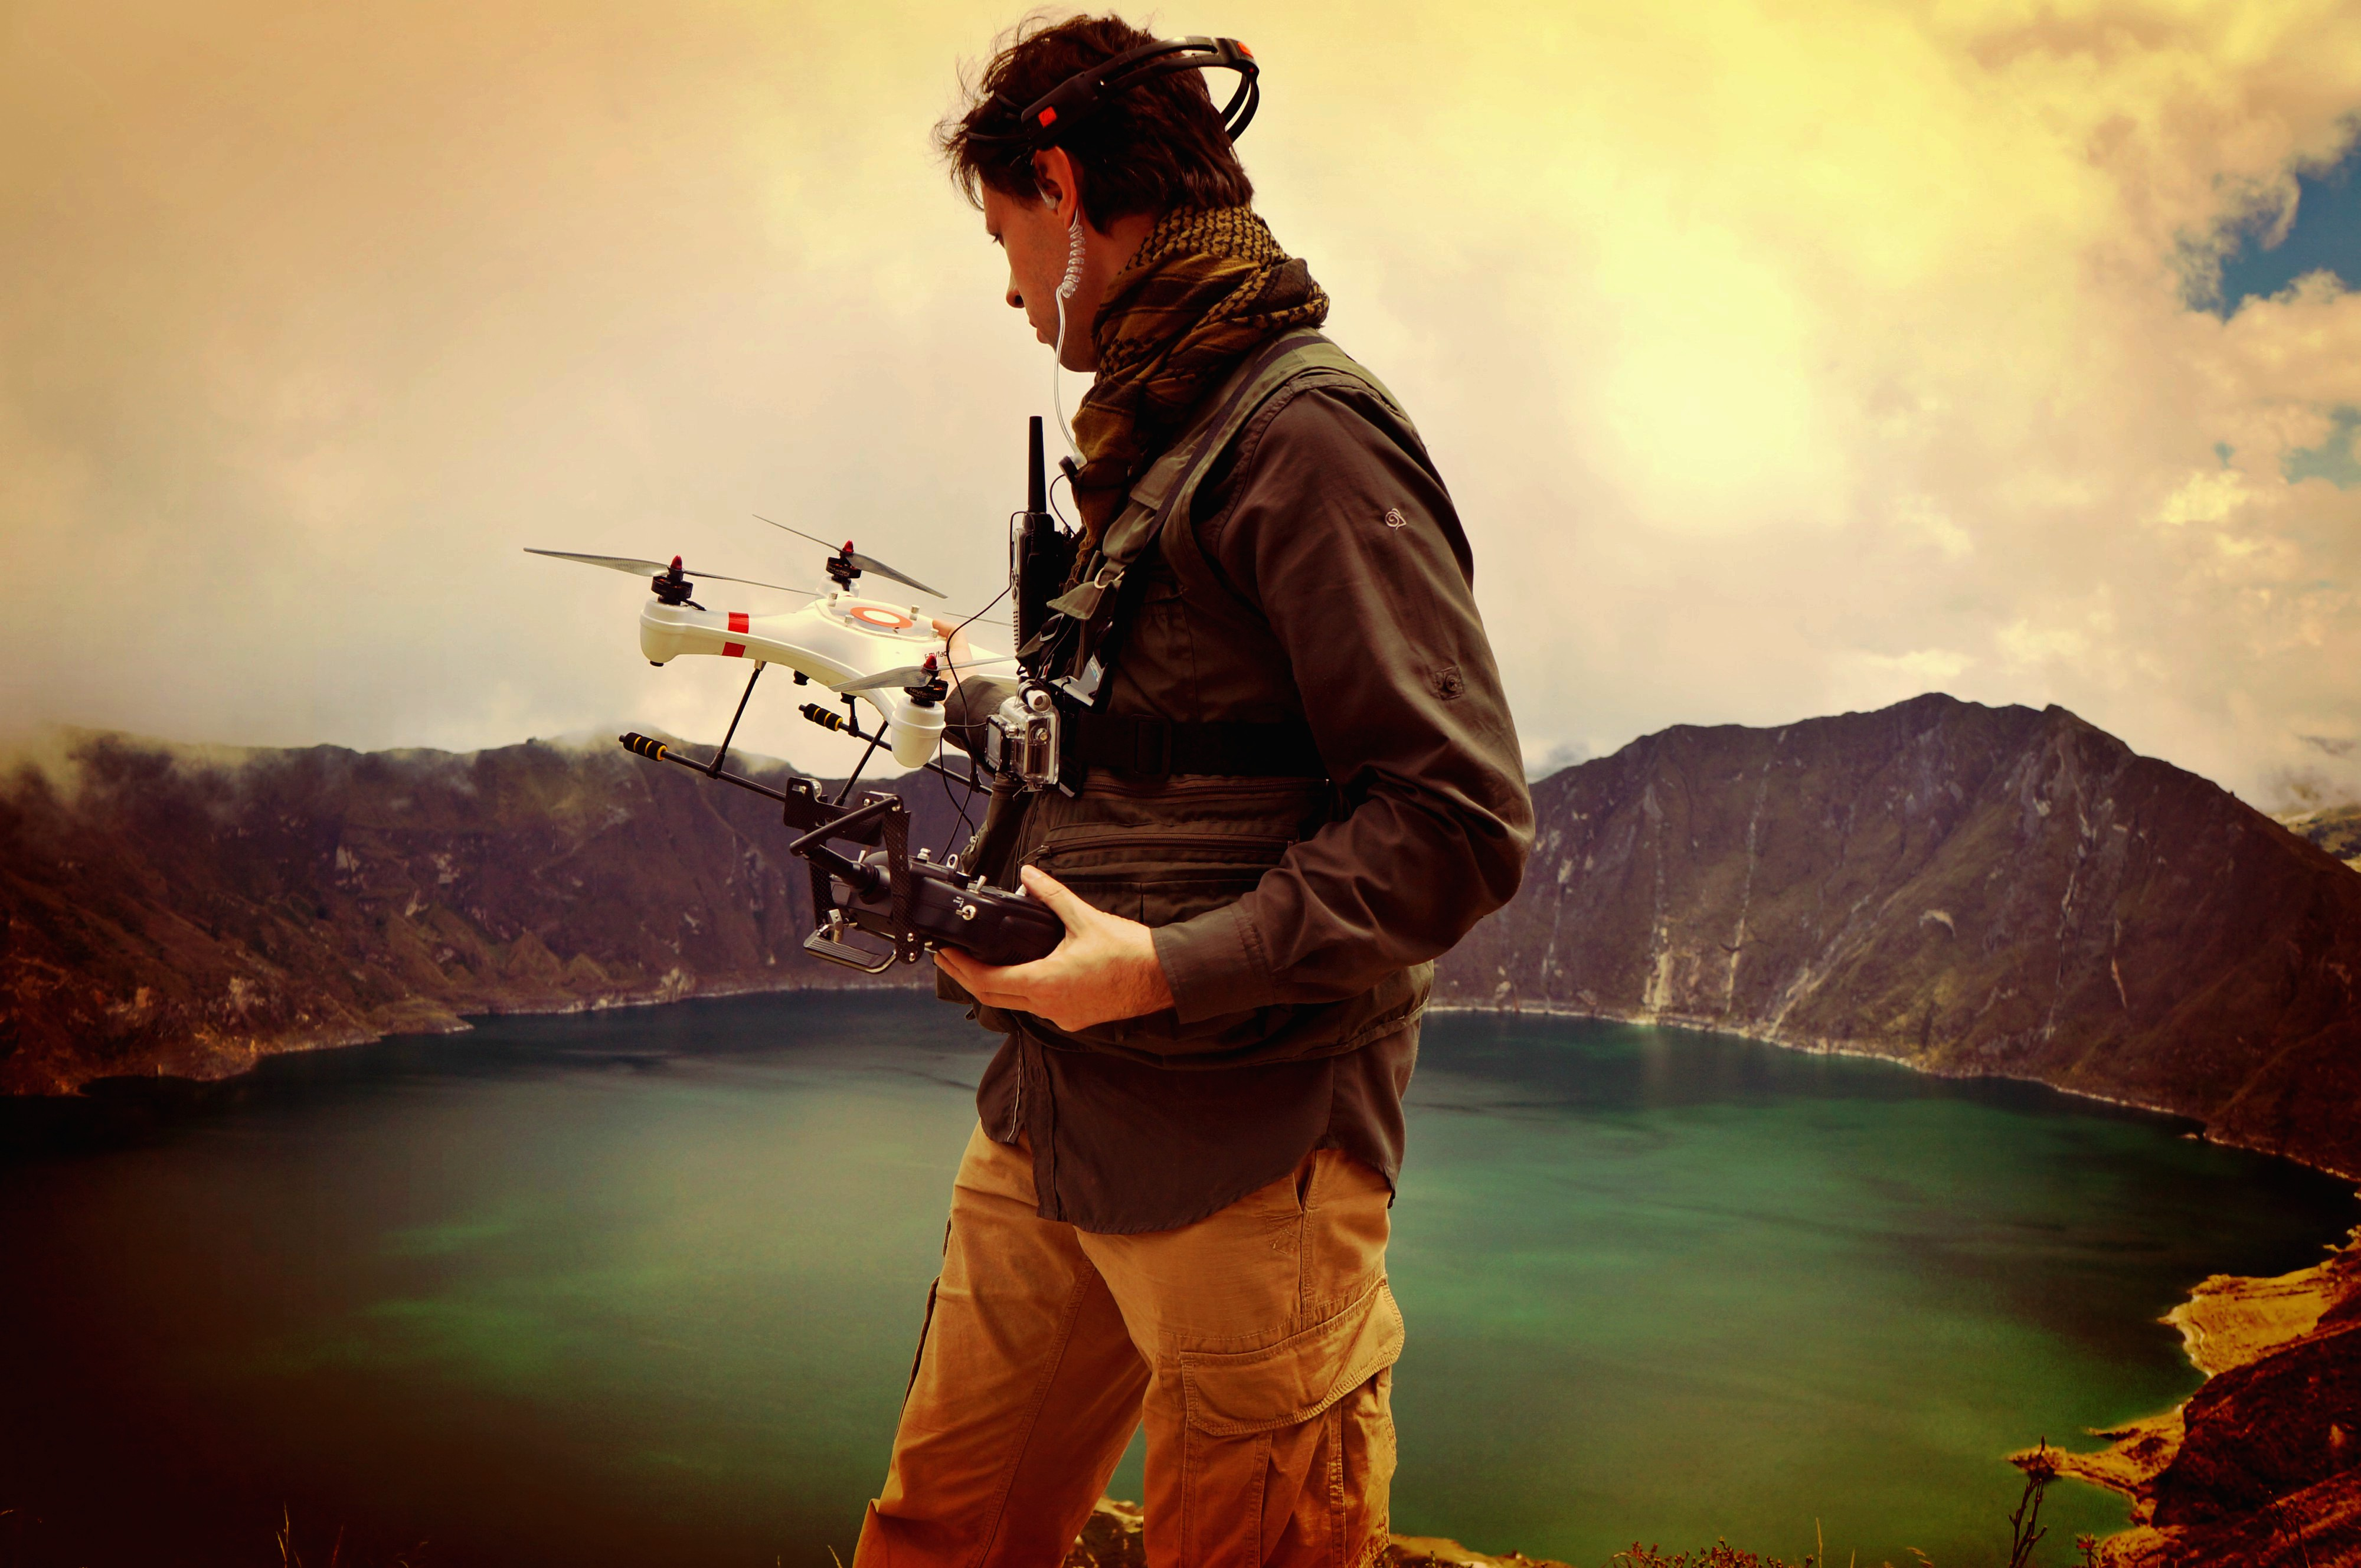 DRONE TECHNOLOGY & CULTURAL HERITAGE